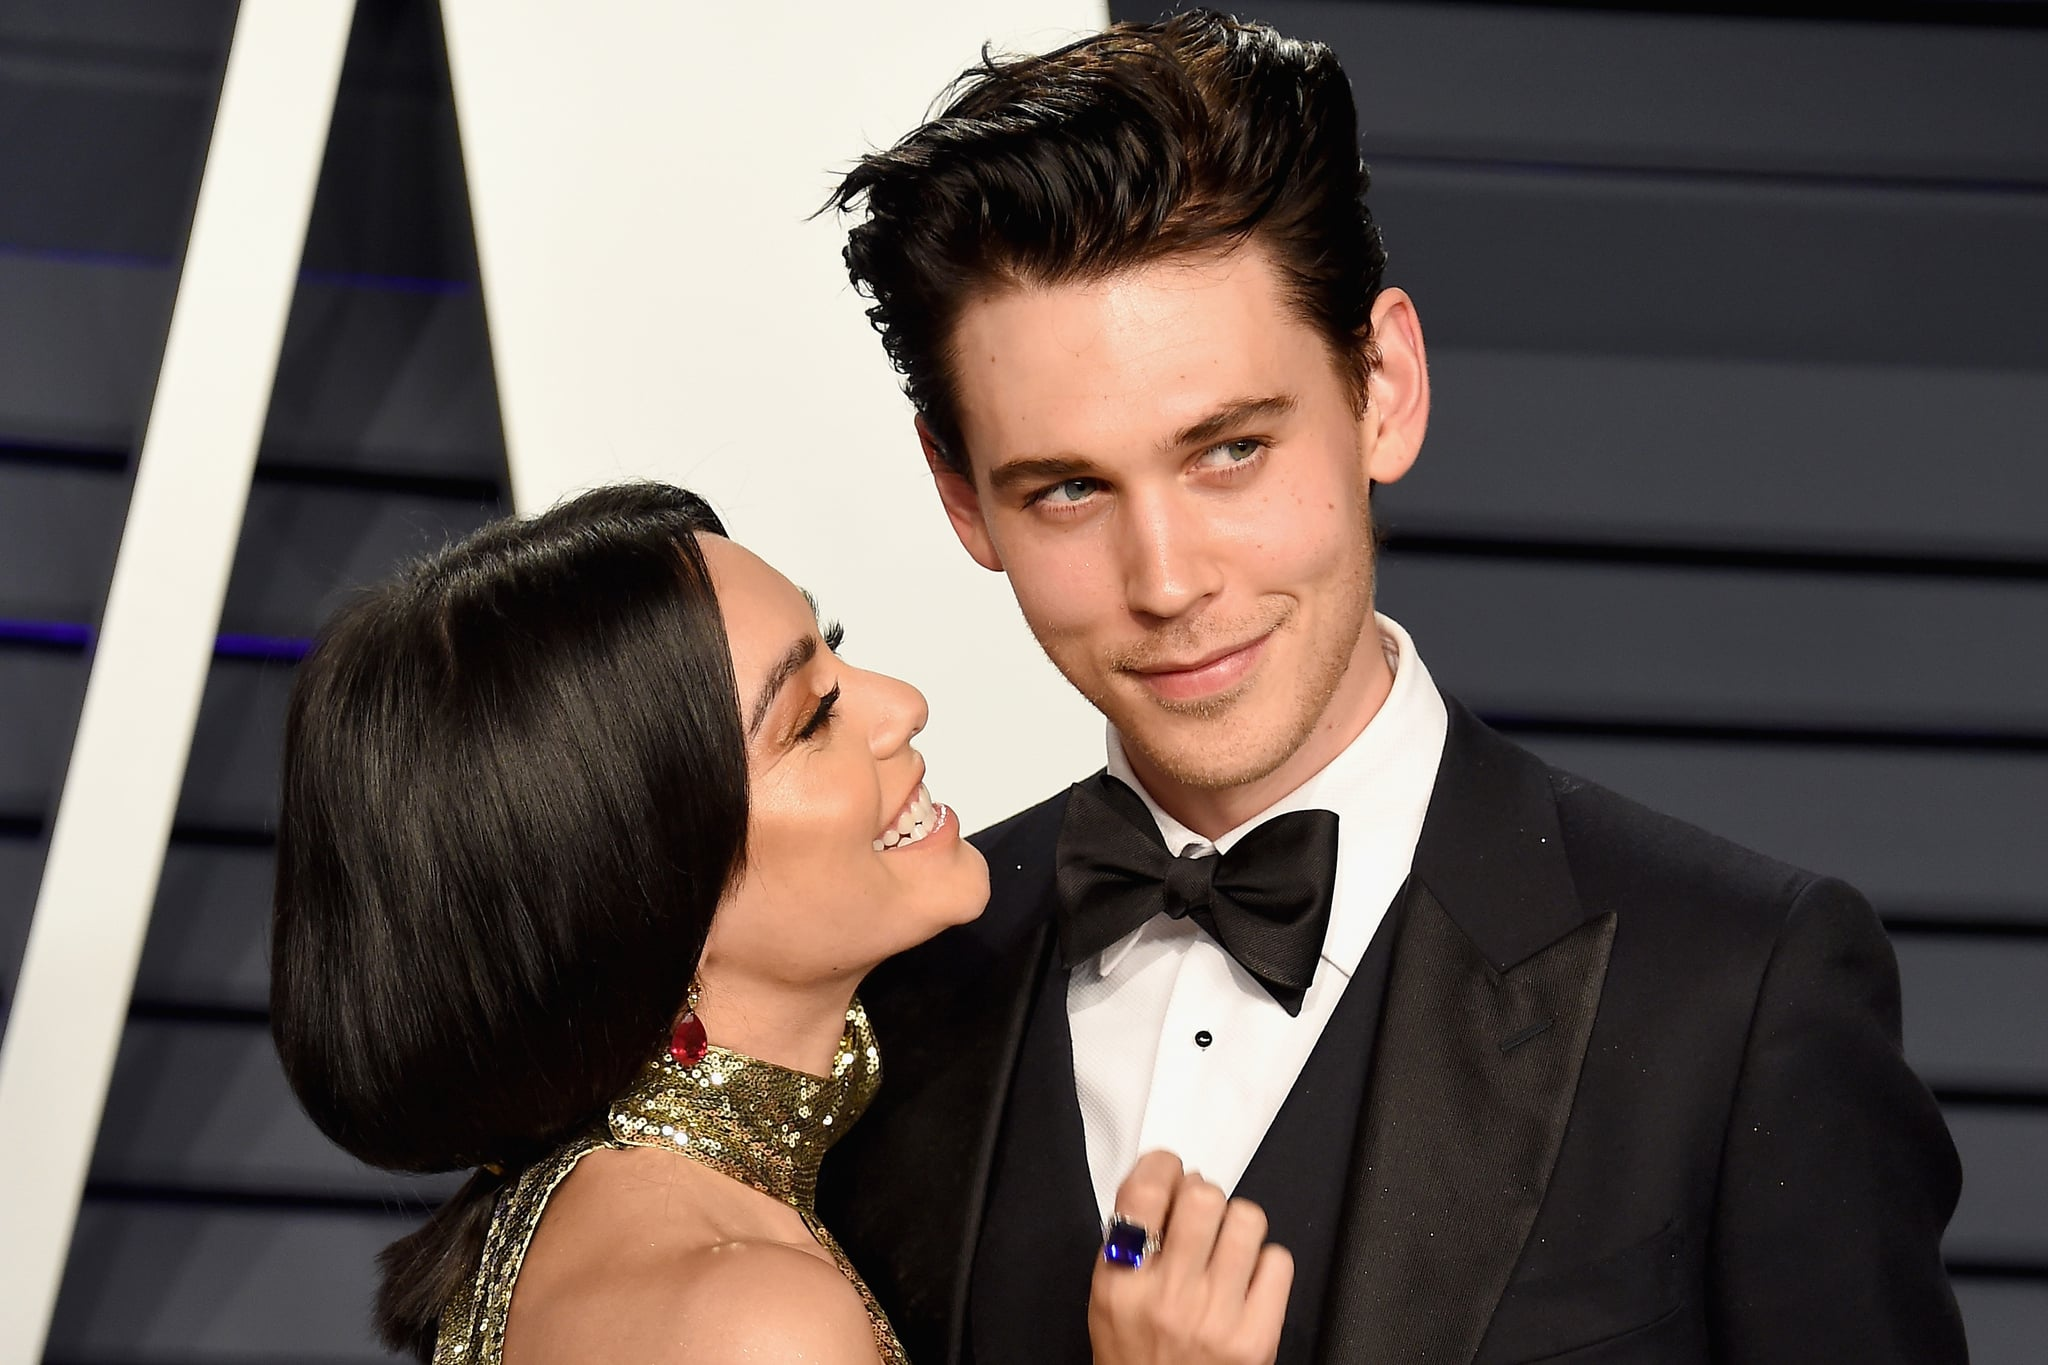 BEVERLY HILLS, CA - FEBRUARY 24: Vanessa Hudgens (L) and Austin Butler attend the 2019 Vanity Fair Oscar Party hosted by Radhika Jones at Wallis Annenberg Centre for the Performing Arts on February 24, 2019 in Beverly Hills, California.  (Photo by Gregg DeGuire/FilmMagic)